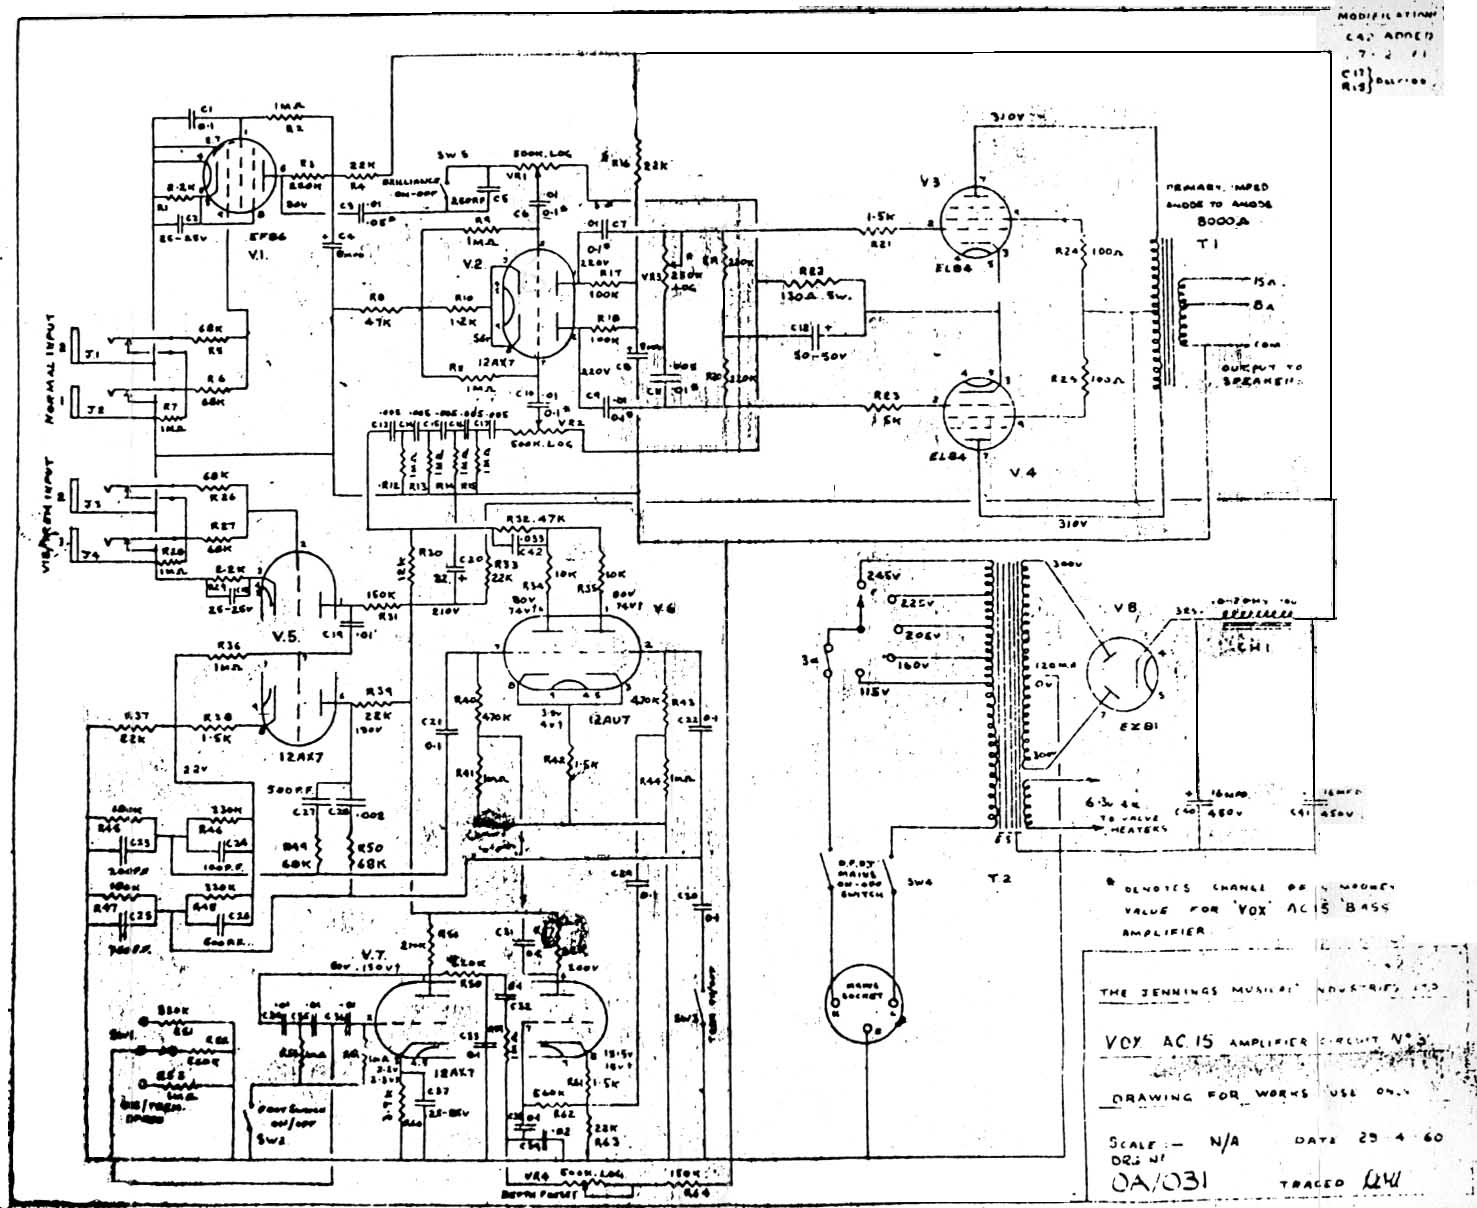 ac15 - 1960, [ download diagram ]